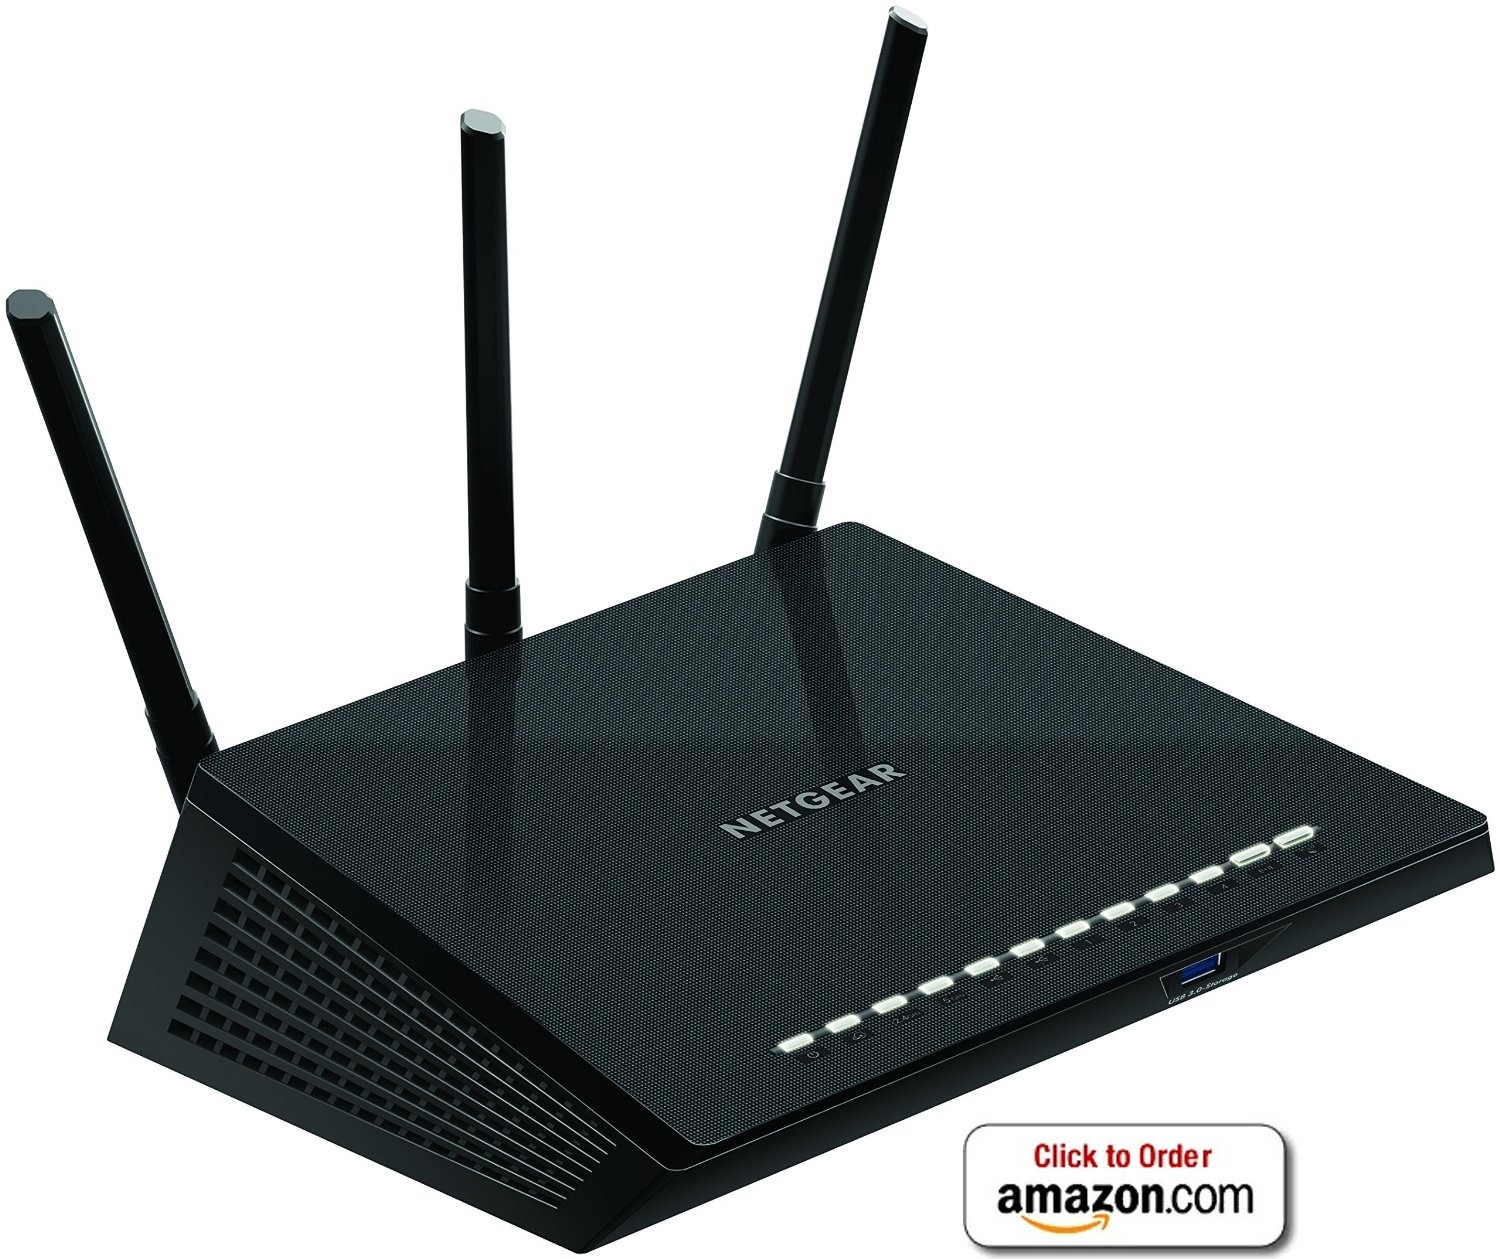 netgear smart dual band wifi router under $100 dollar 2017